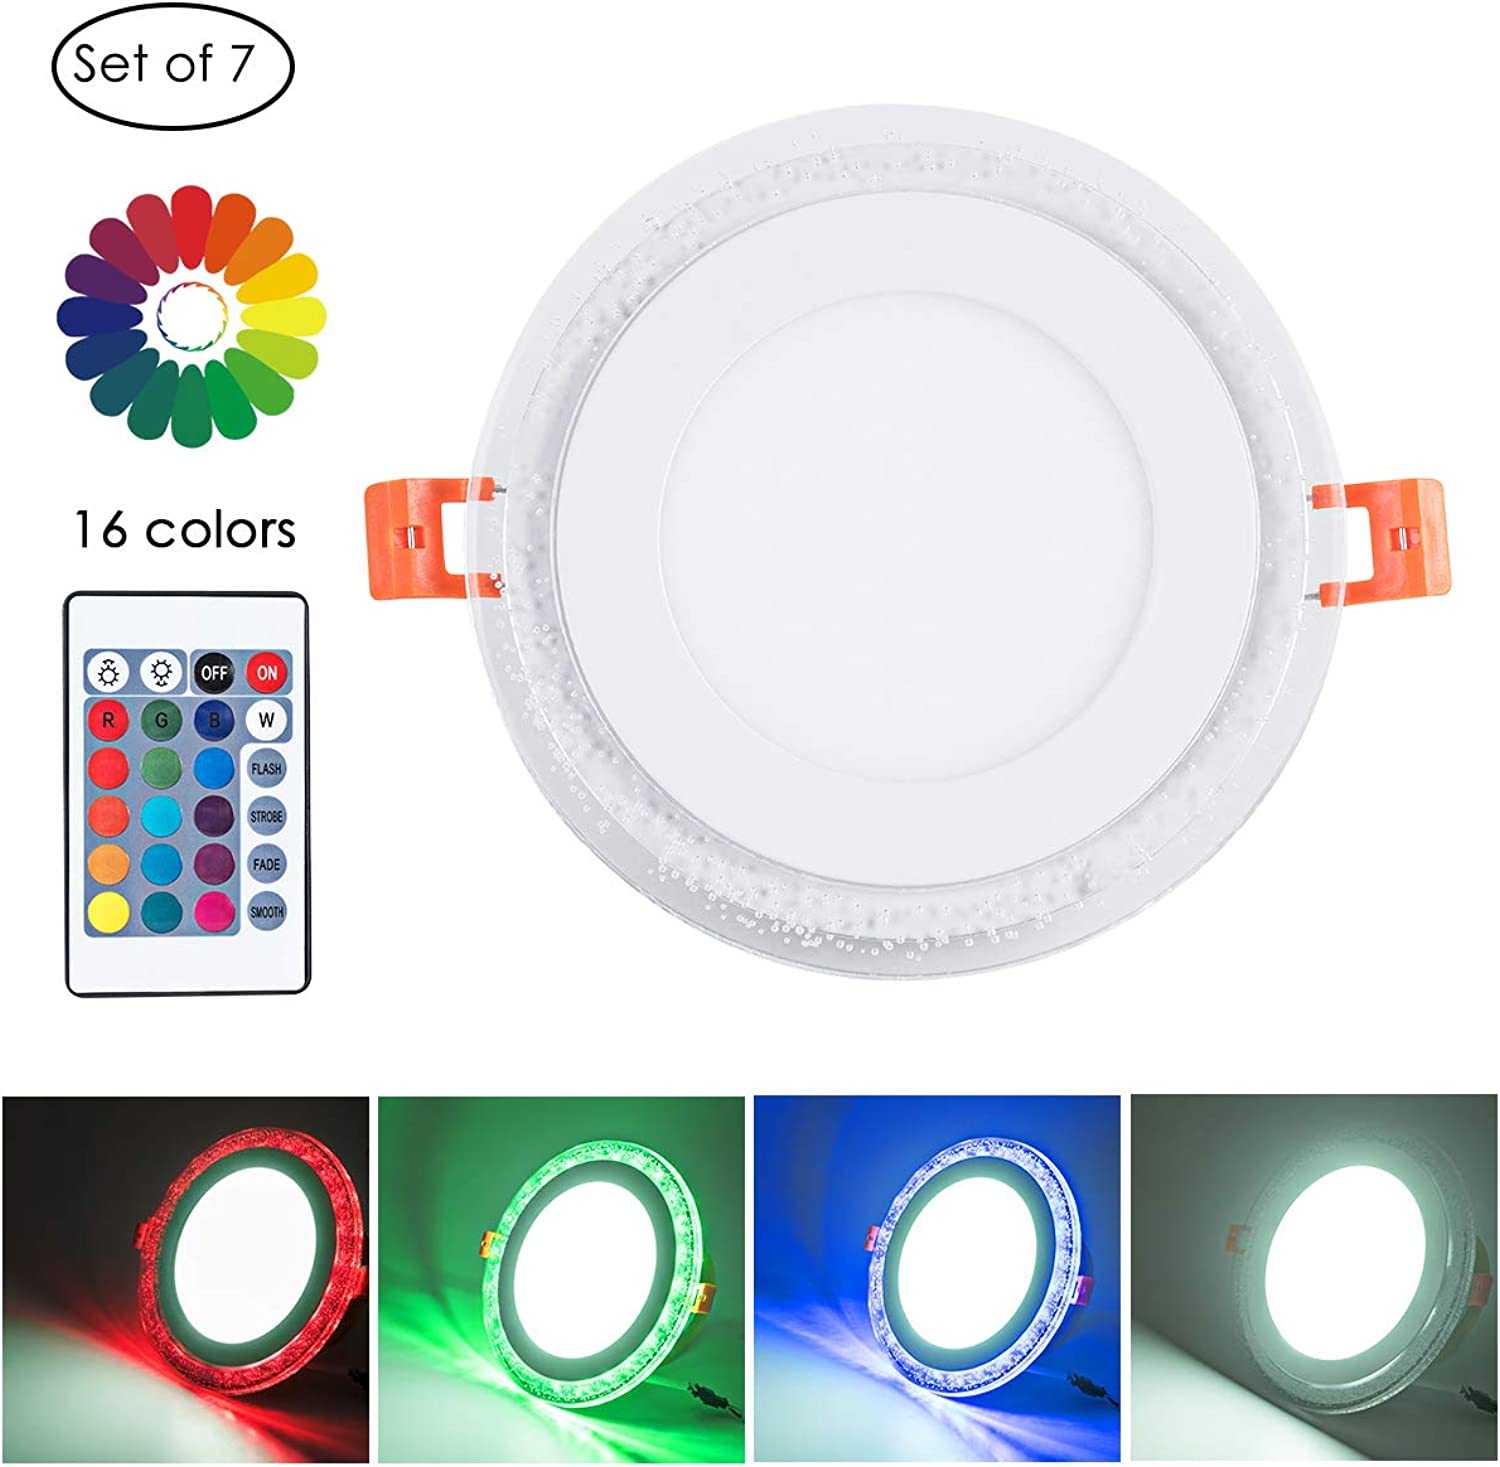 Remote Control 4  Cool White + RGB LED Round Panel Light, color Changing Ultra Thin Recessed Ceiling Lights with Driver, AC100-240V 6+3W, 6500K Cool White+RGB for Office, Home, Living Room, Pack of 7